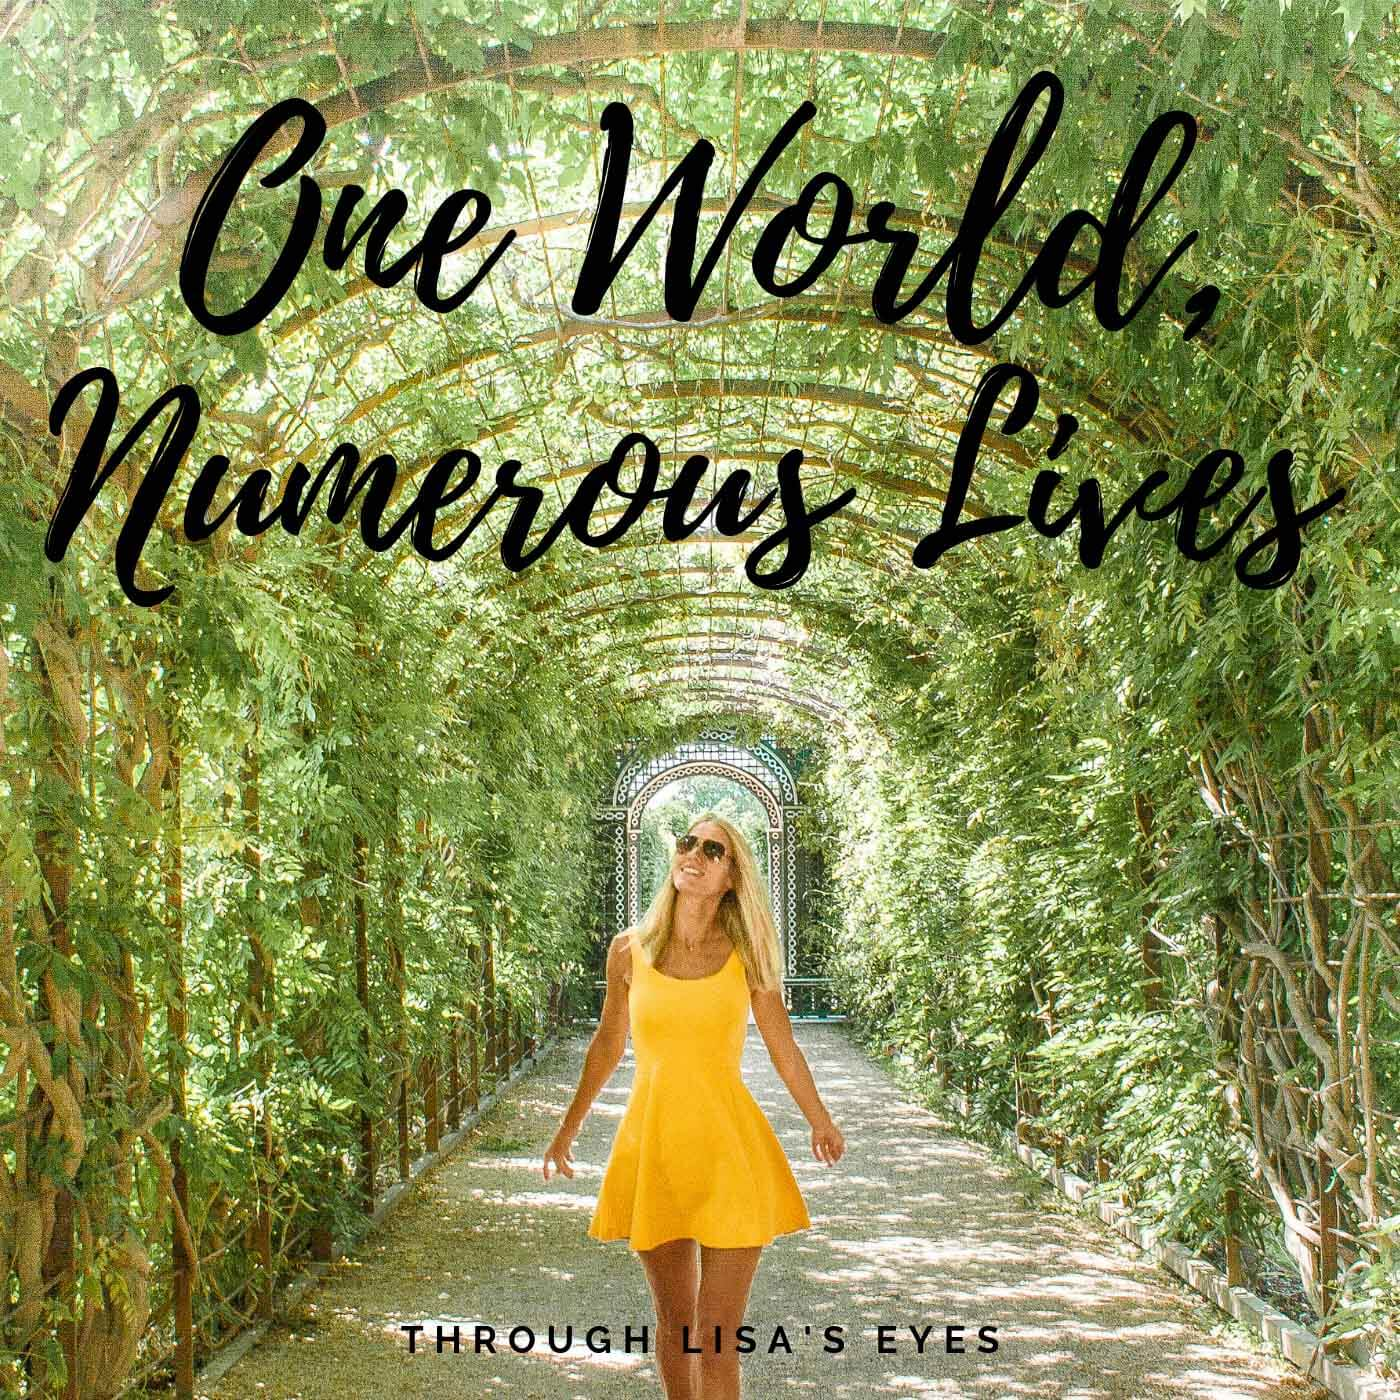 the podcast one world numerous lives aims to give inspirational thoughts by presenting a variety of different life stories while I interview my international network friends